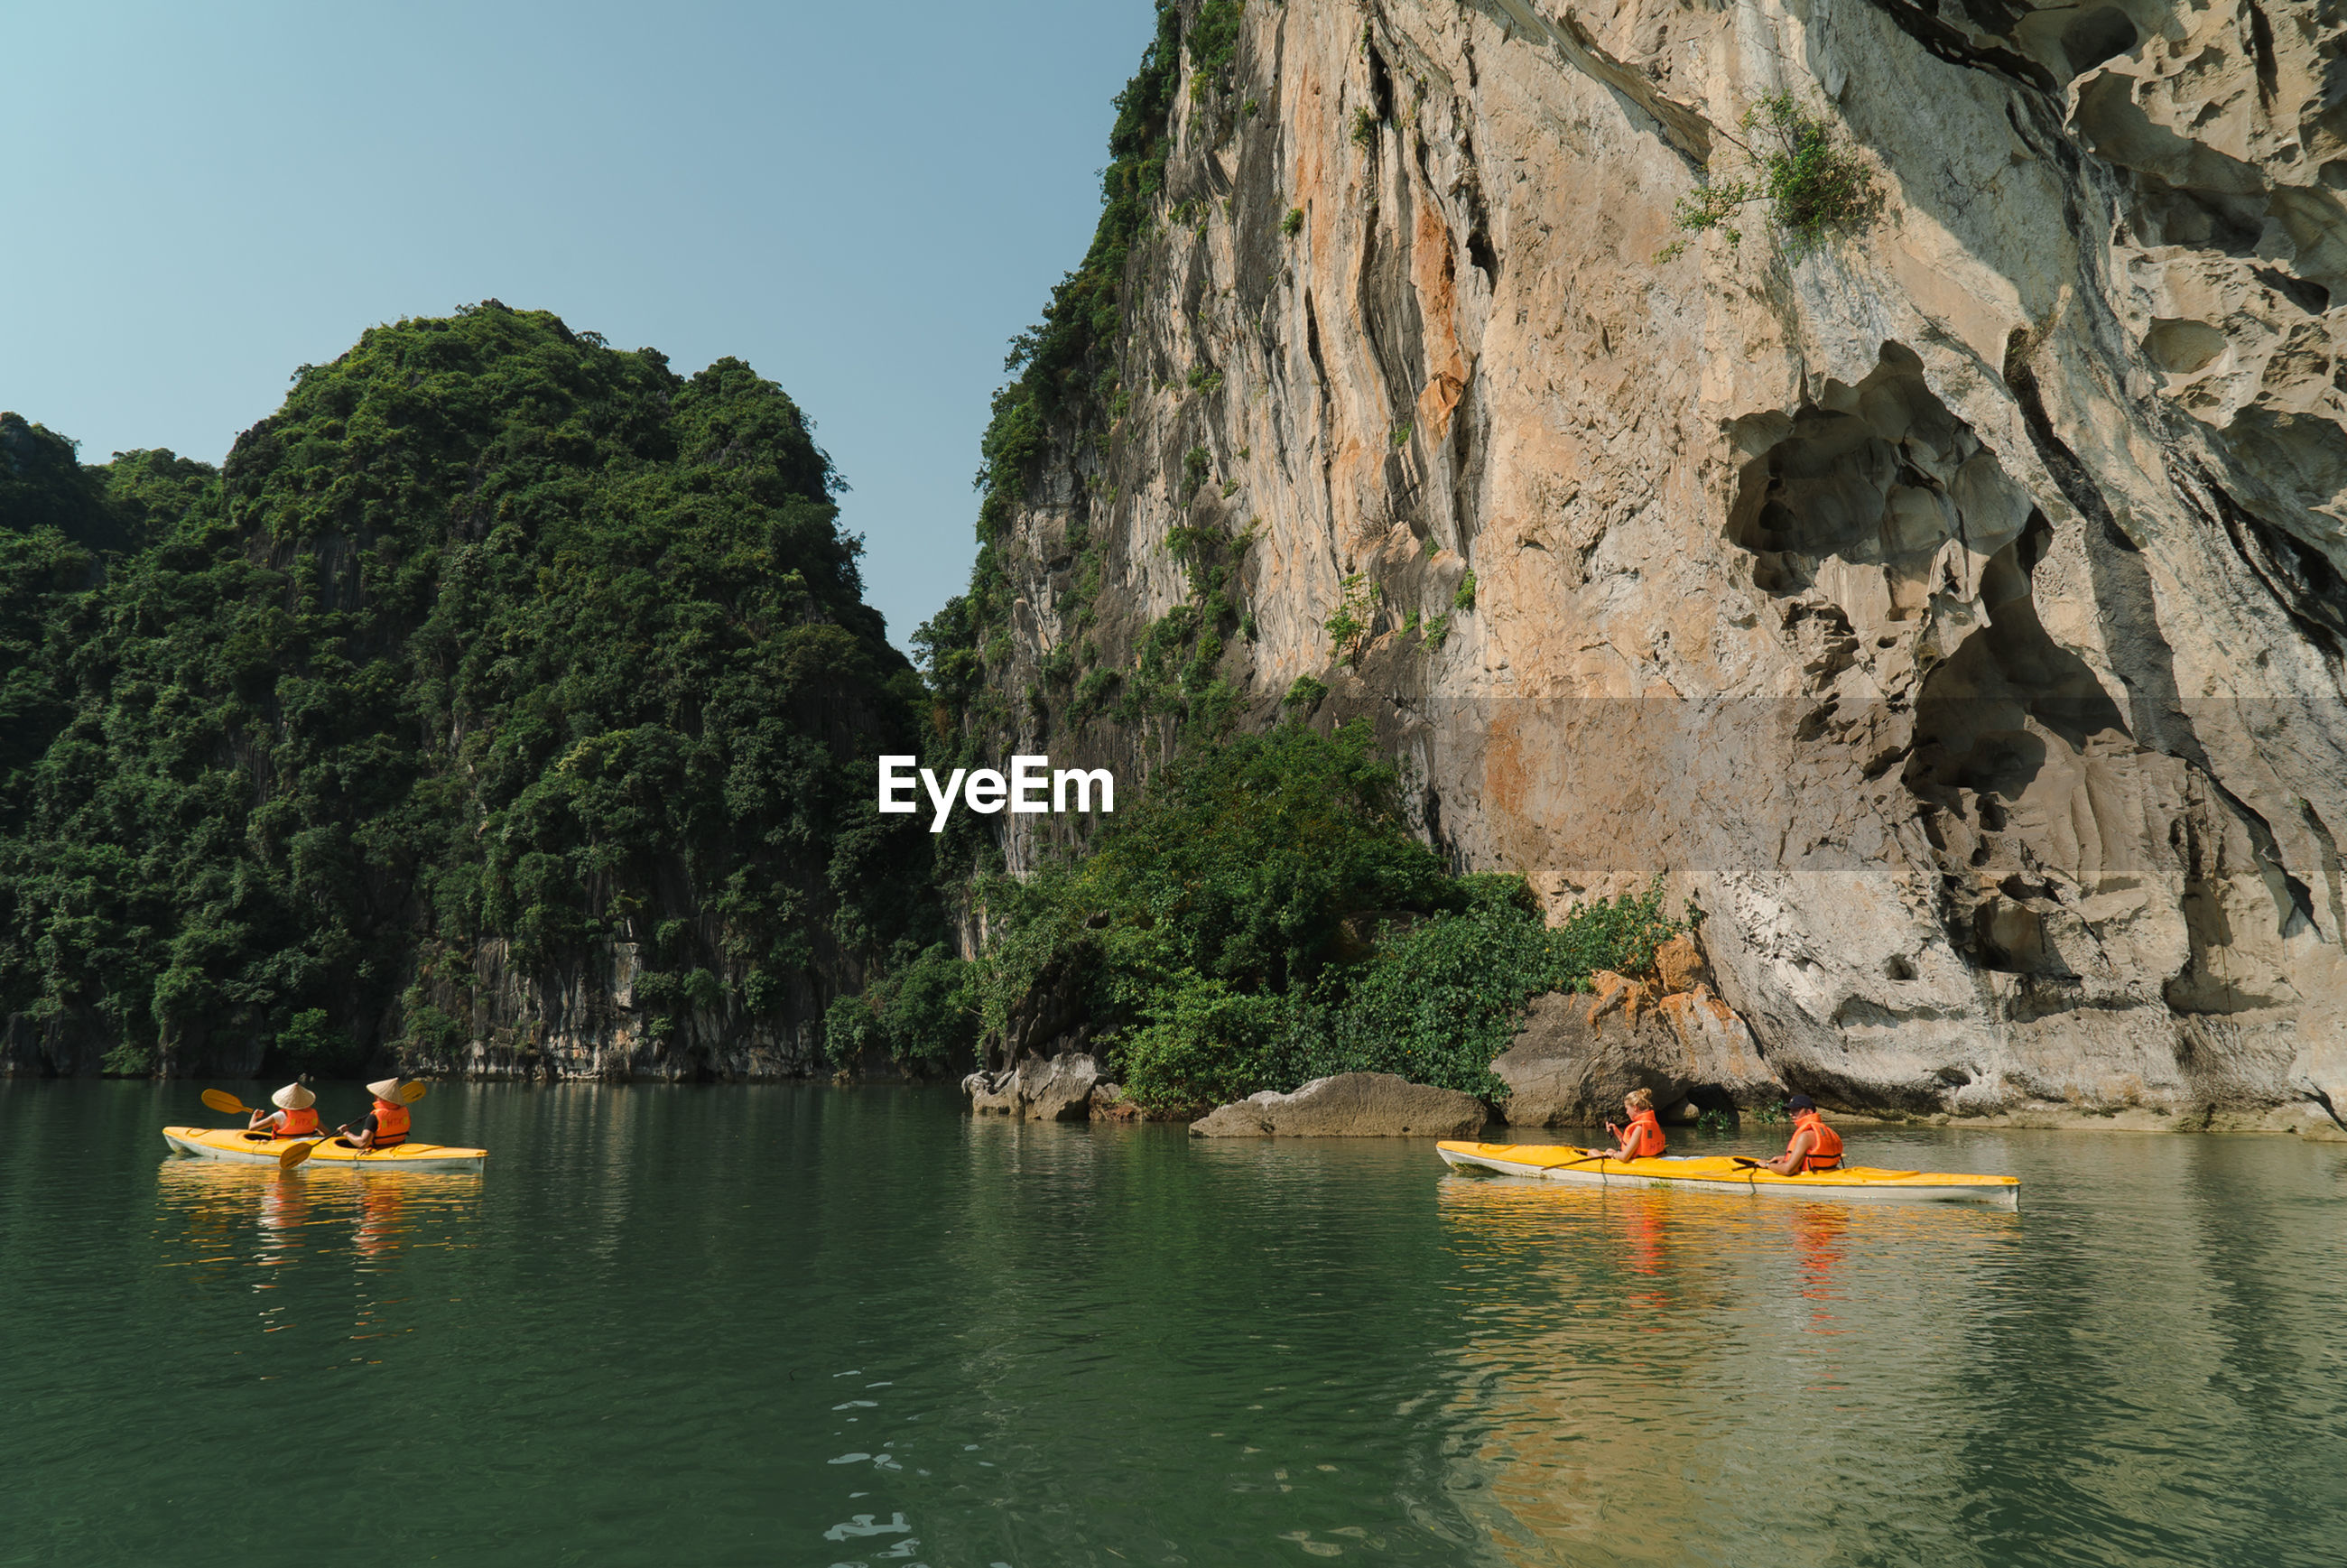 People kayaking against rocky cliff